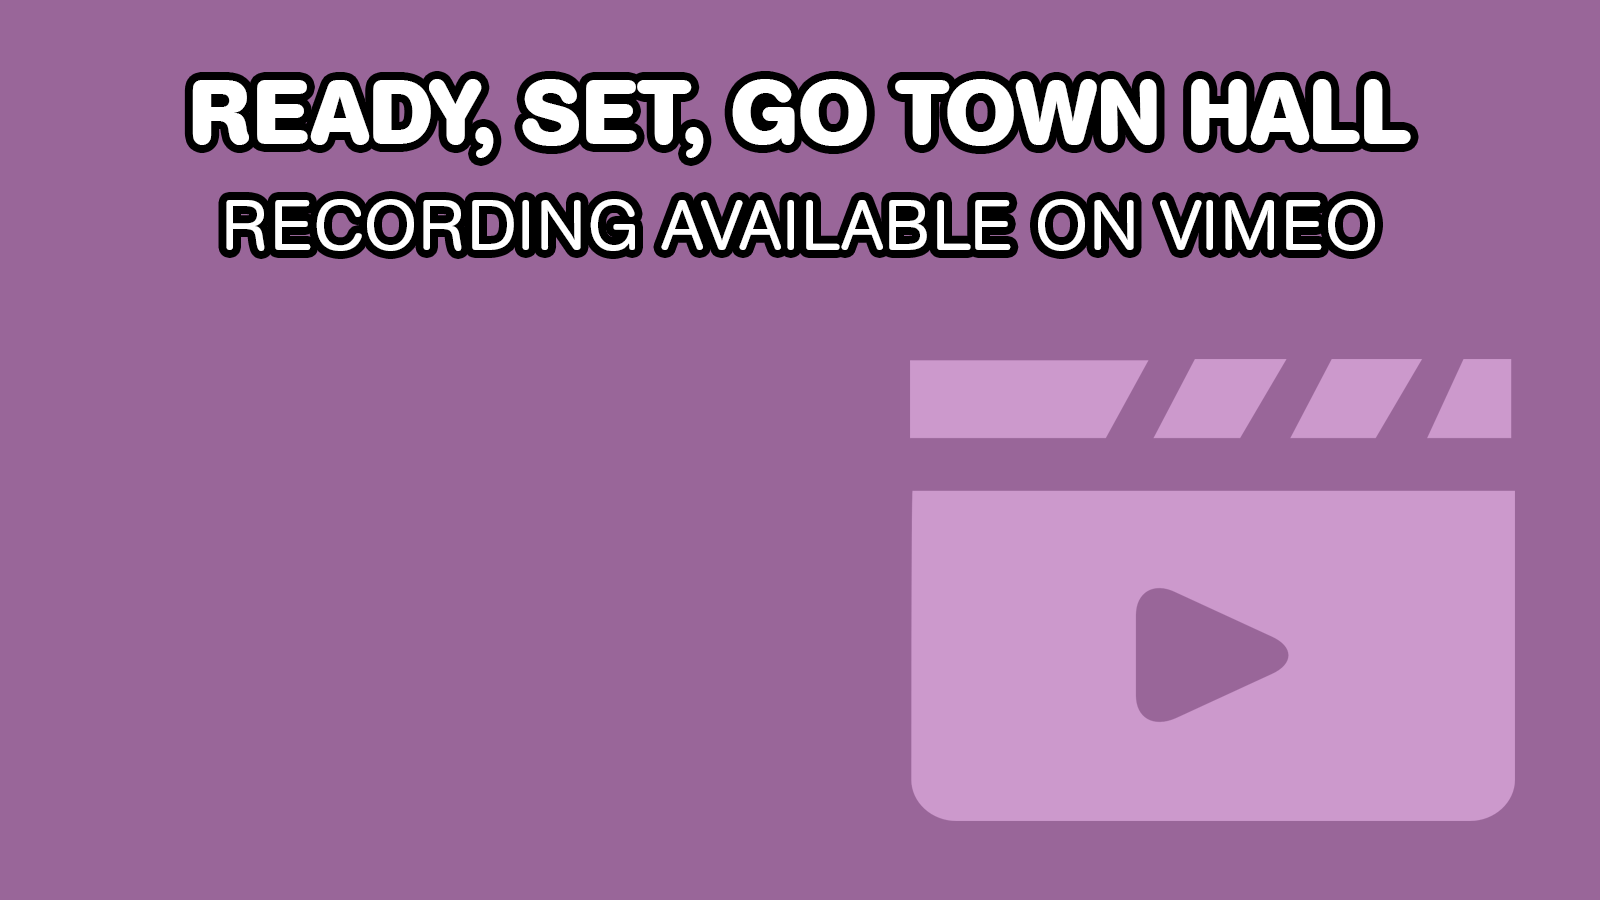 Town Hall Recording Available